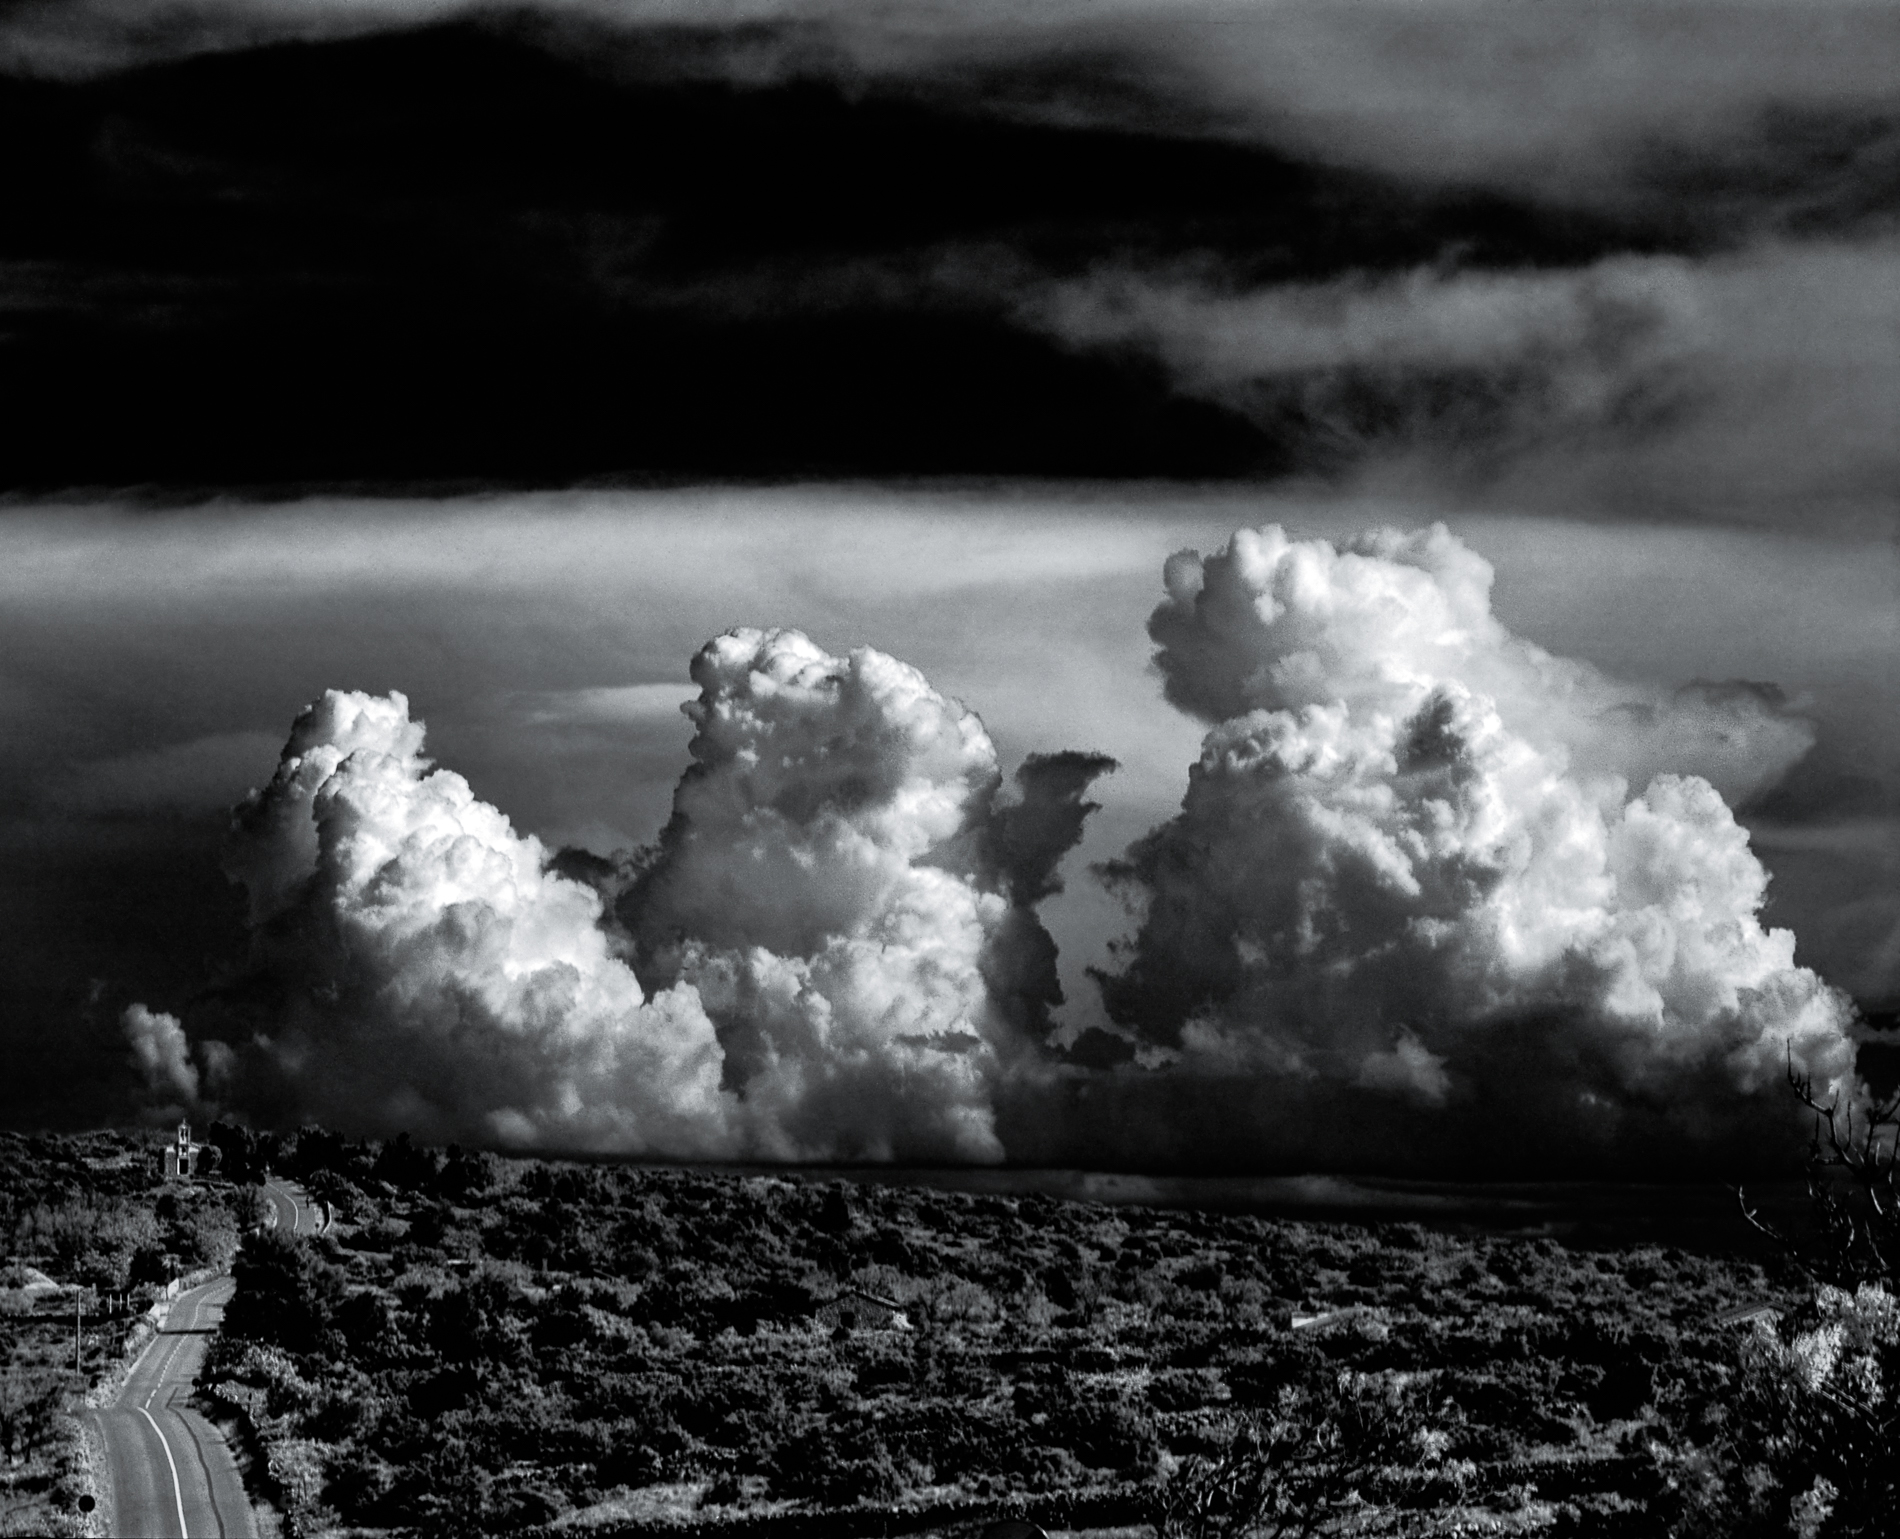 a road to the clouds | mamiya rz67 pro-II | 250mm f4.5 | rollei retro 80s infrared | spur sd2525 | kornelije sajler